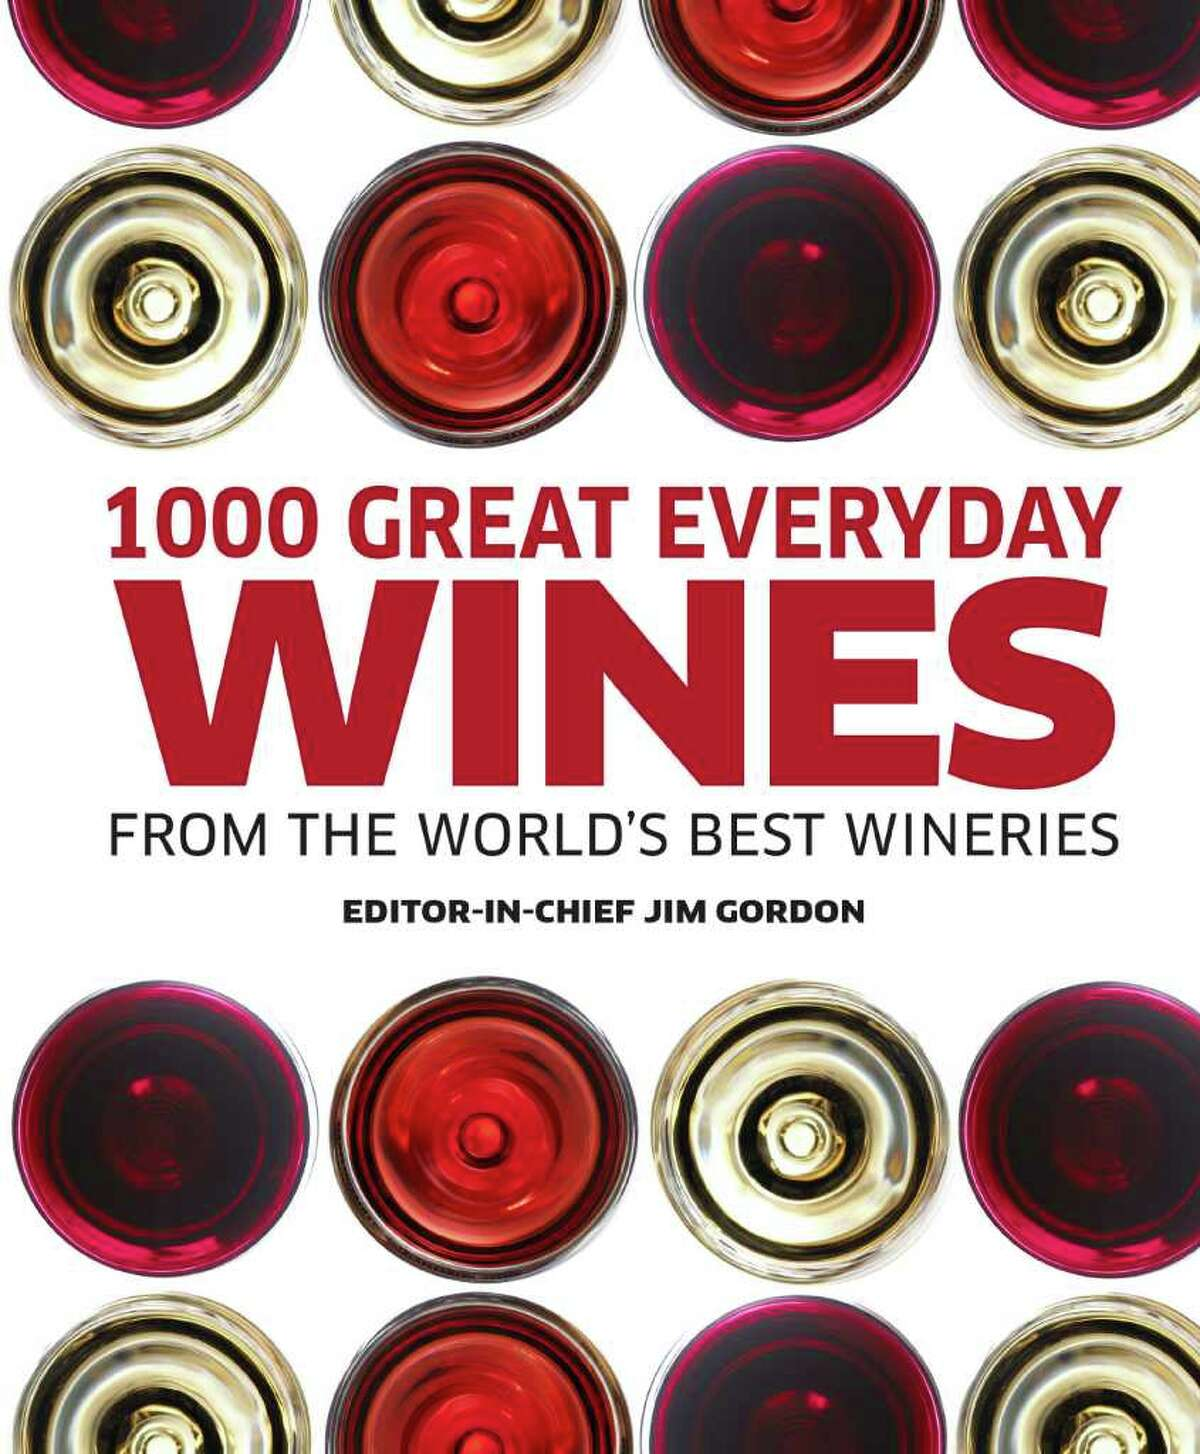 1000 Great Everyday Wines by Jim Gordon